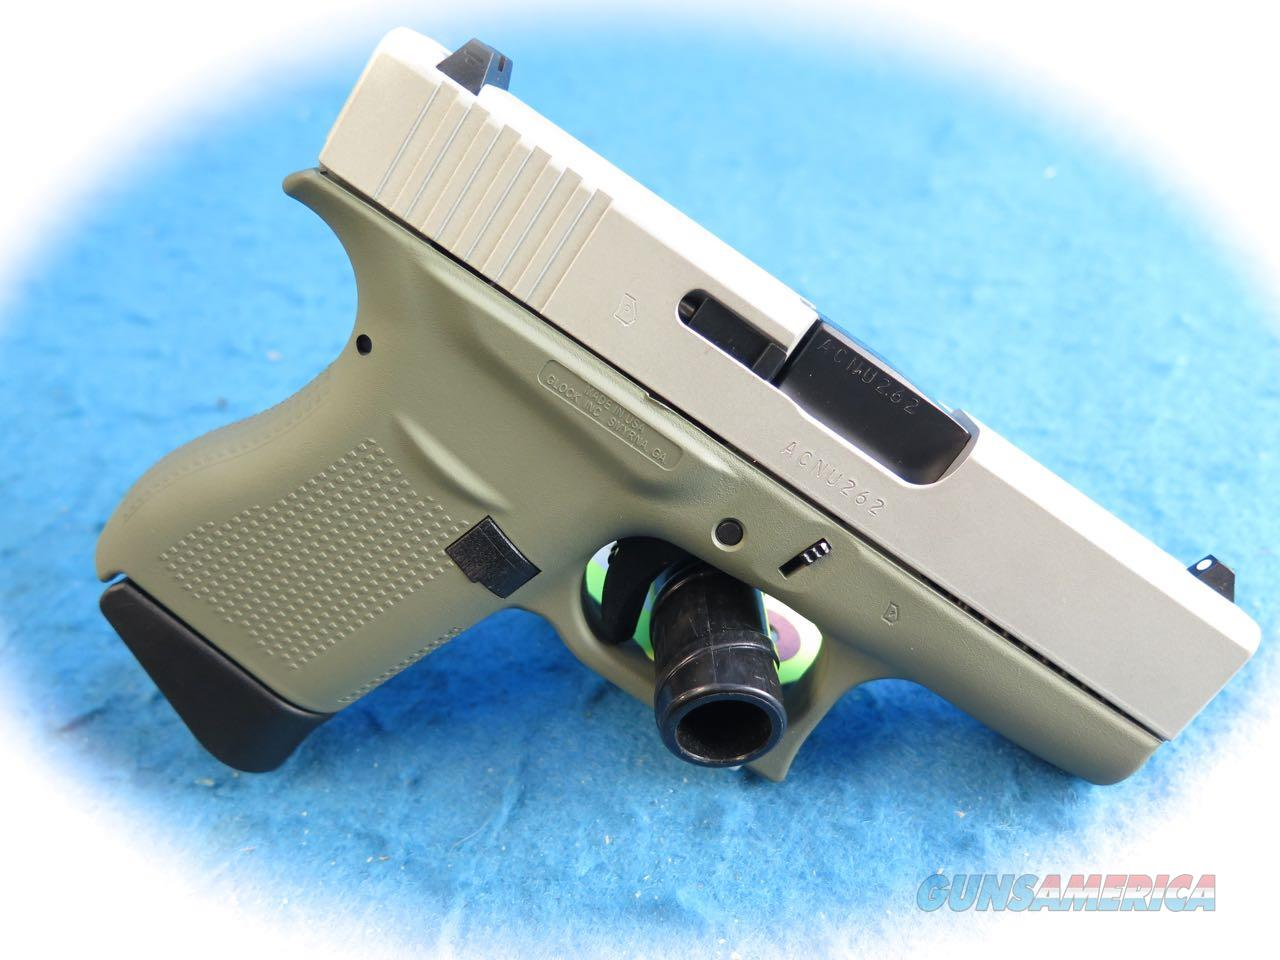 Glock Model 43 9mm Semi Auto Pistol Forest Green Finish **New**  Guns > Pistols > Glock Pistols > 43